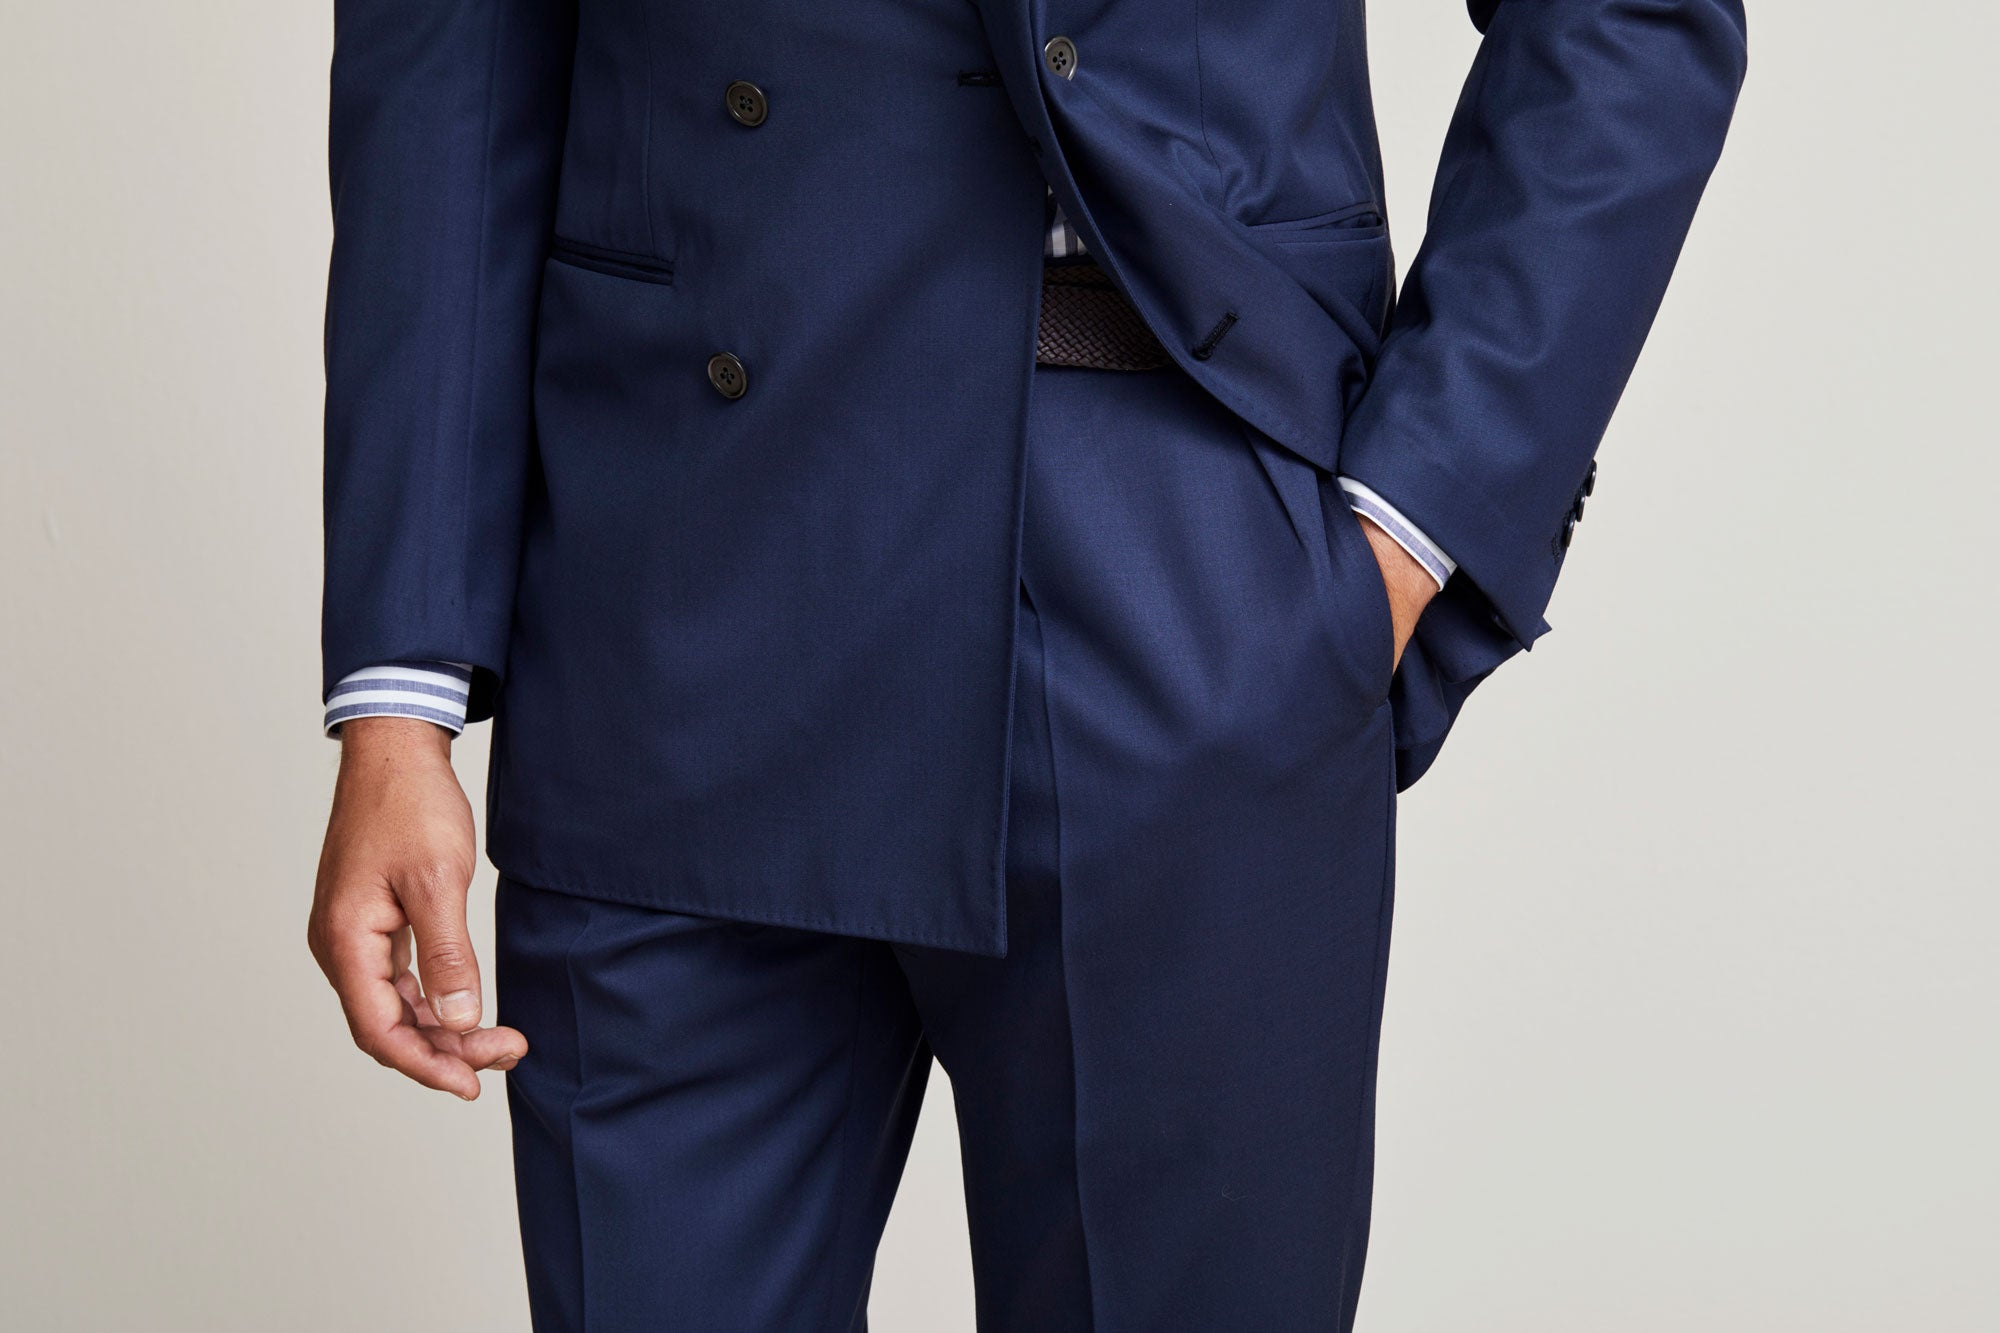 P Johnson Luxurious Made-to-Measure Clothing